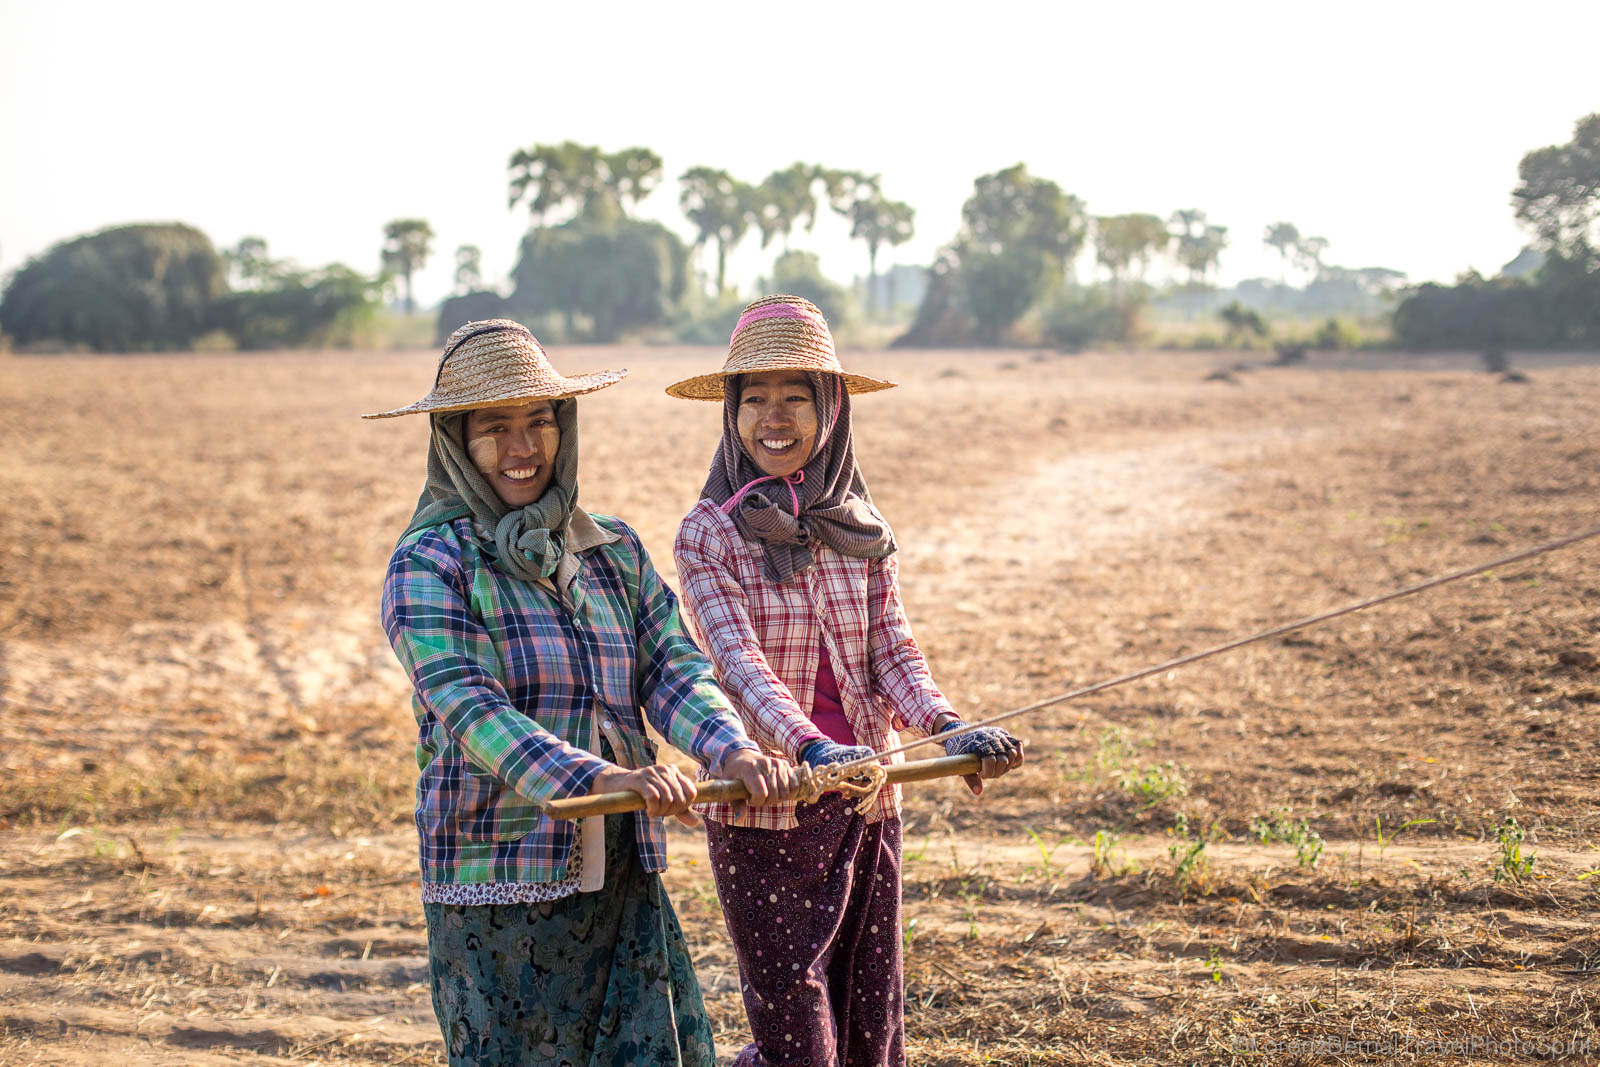 Women Farmers in Bagan, Myanmar.